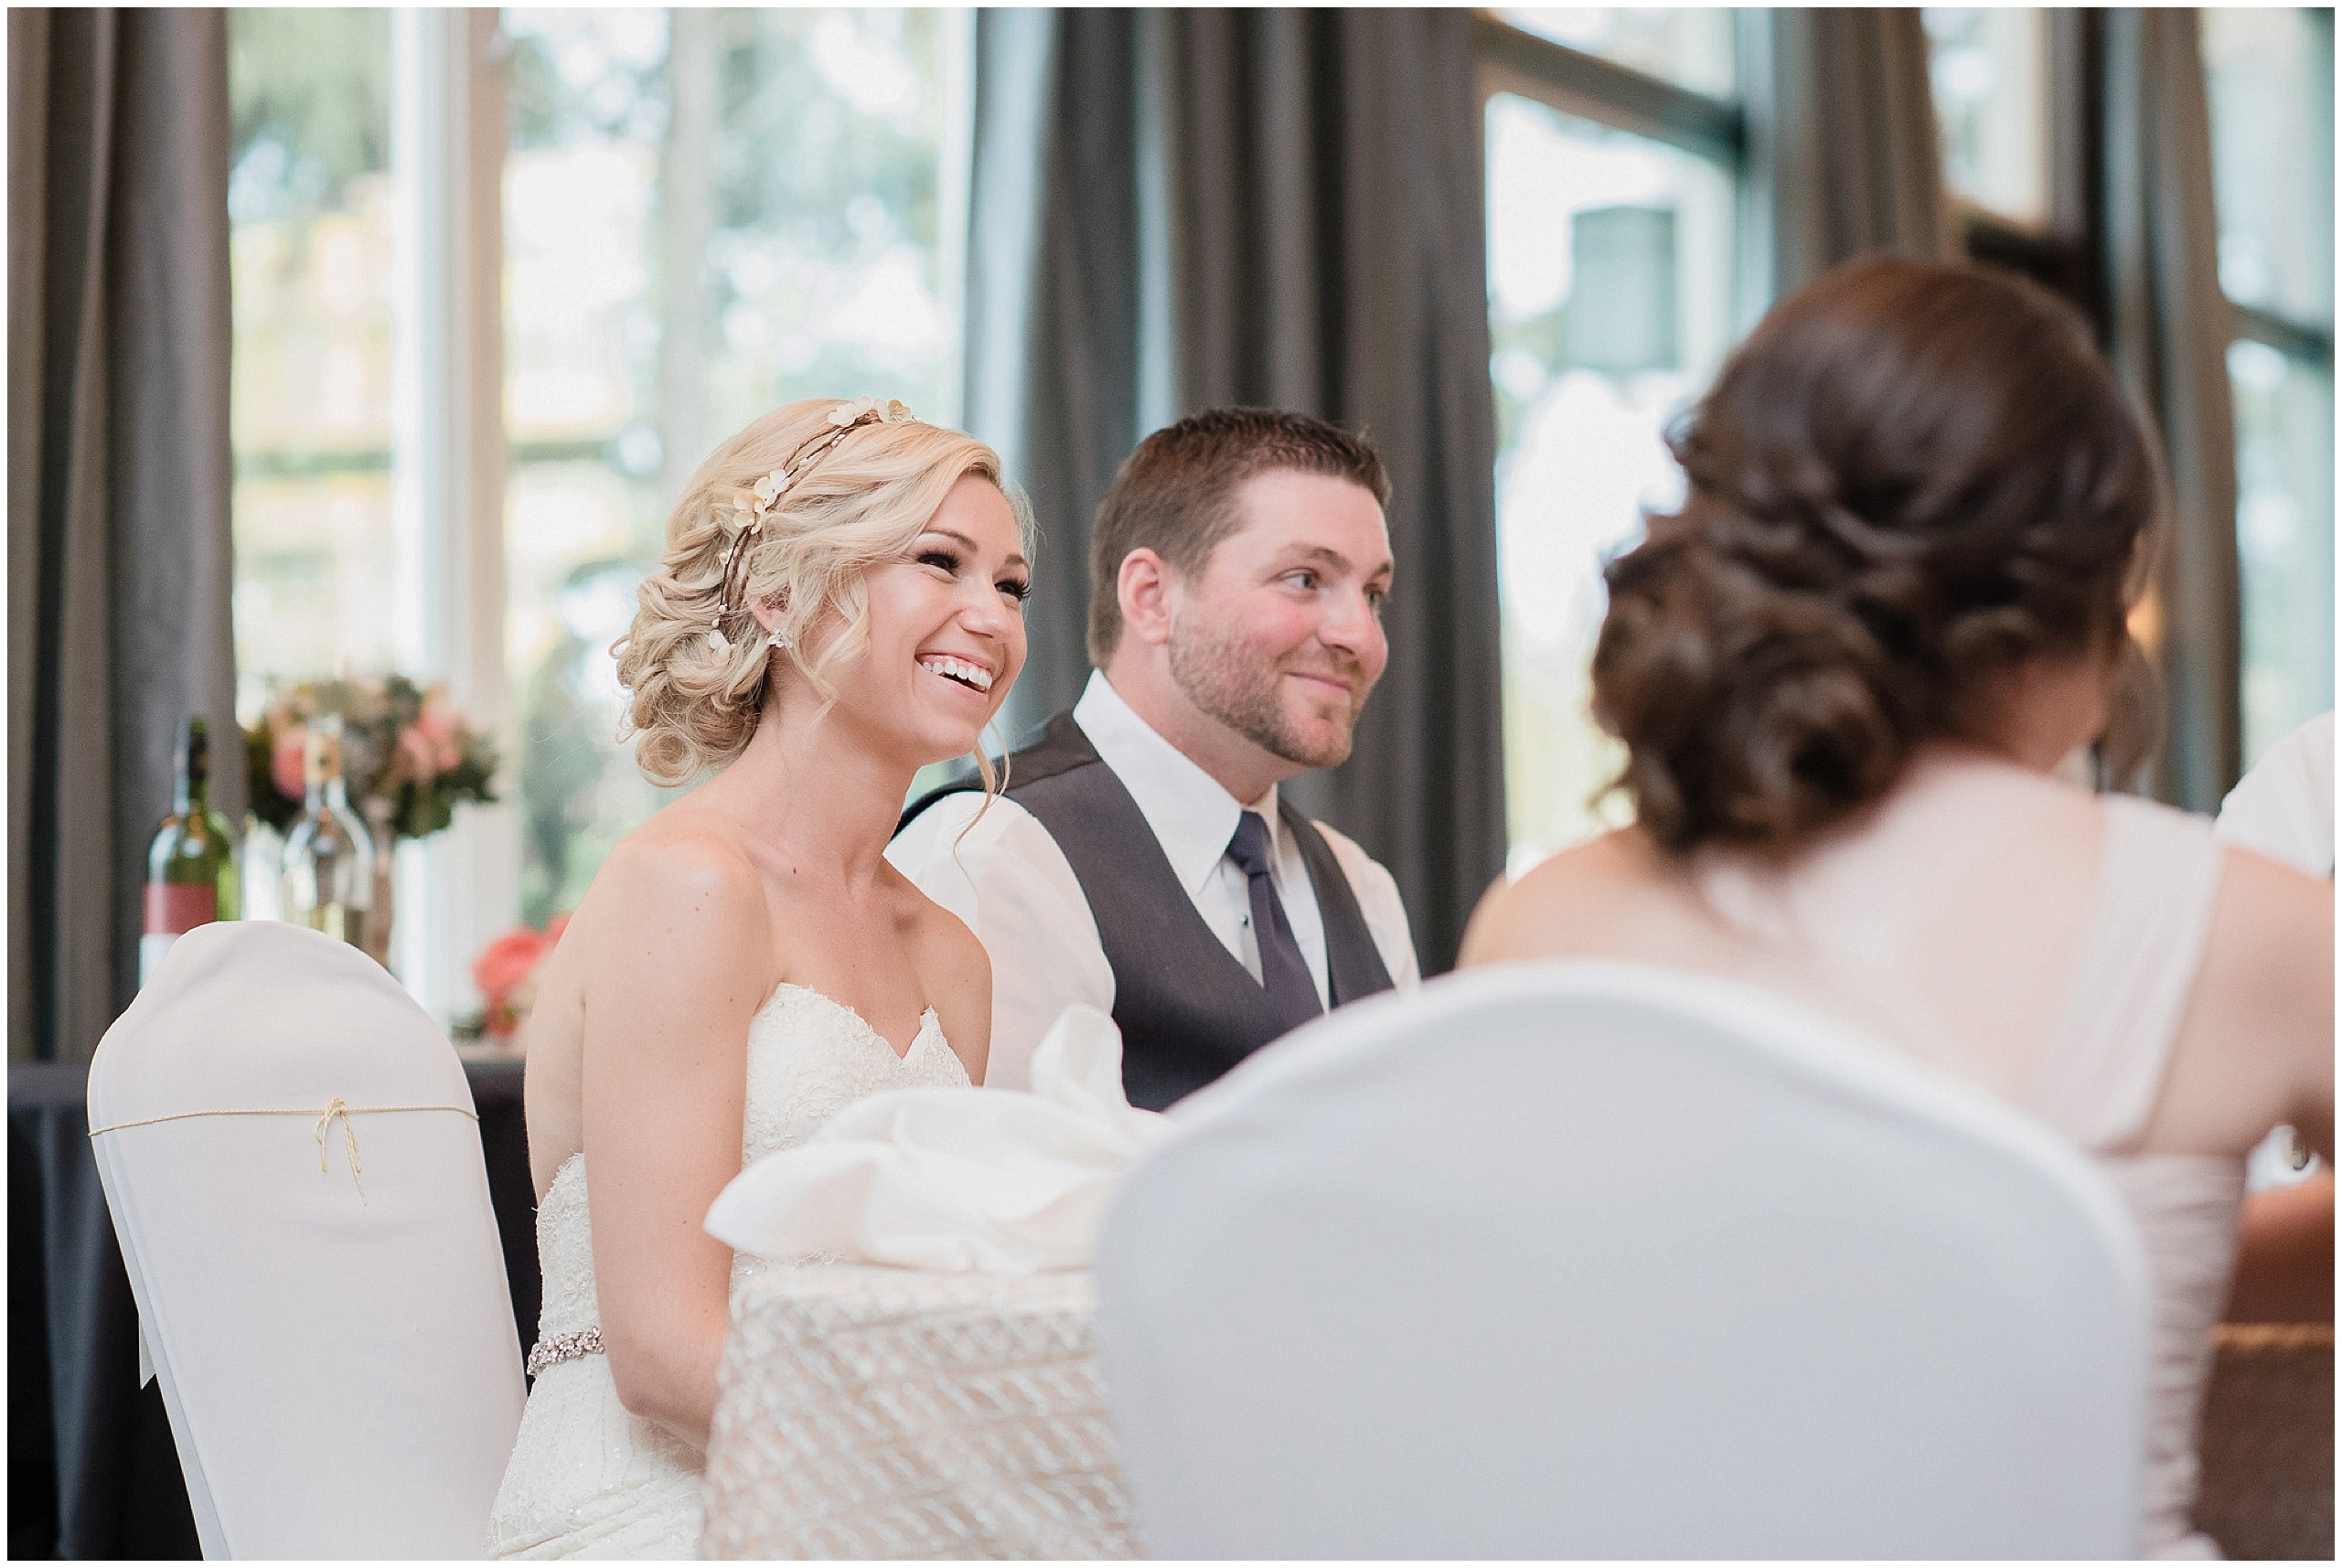 Stunning bride and groom at their Bear Estate Wedding photographed by Jenn Kavanagh Photography